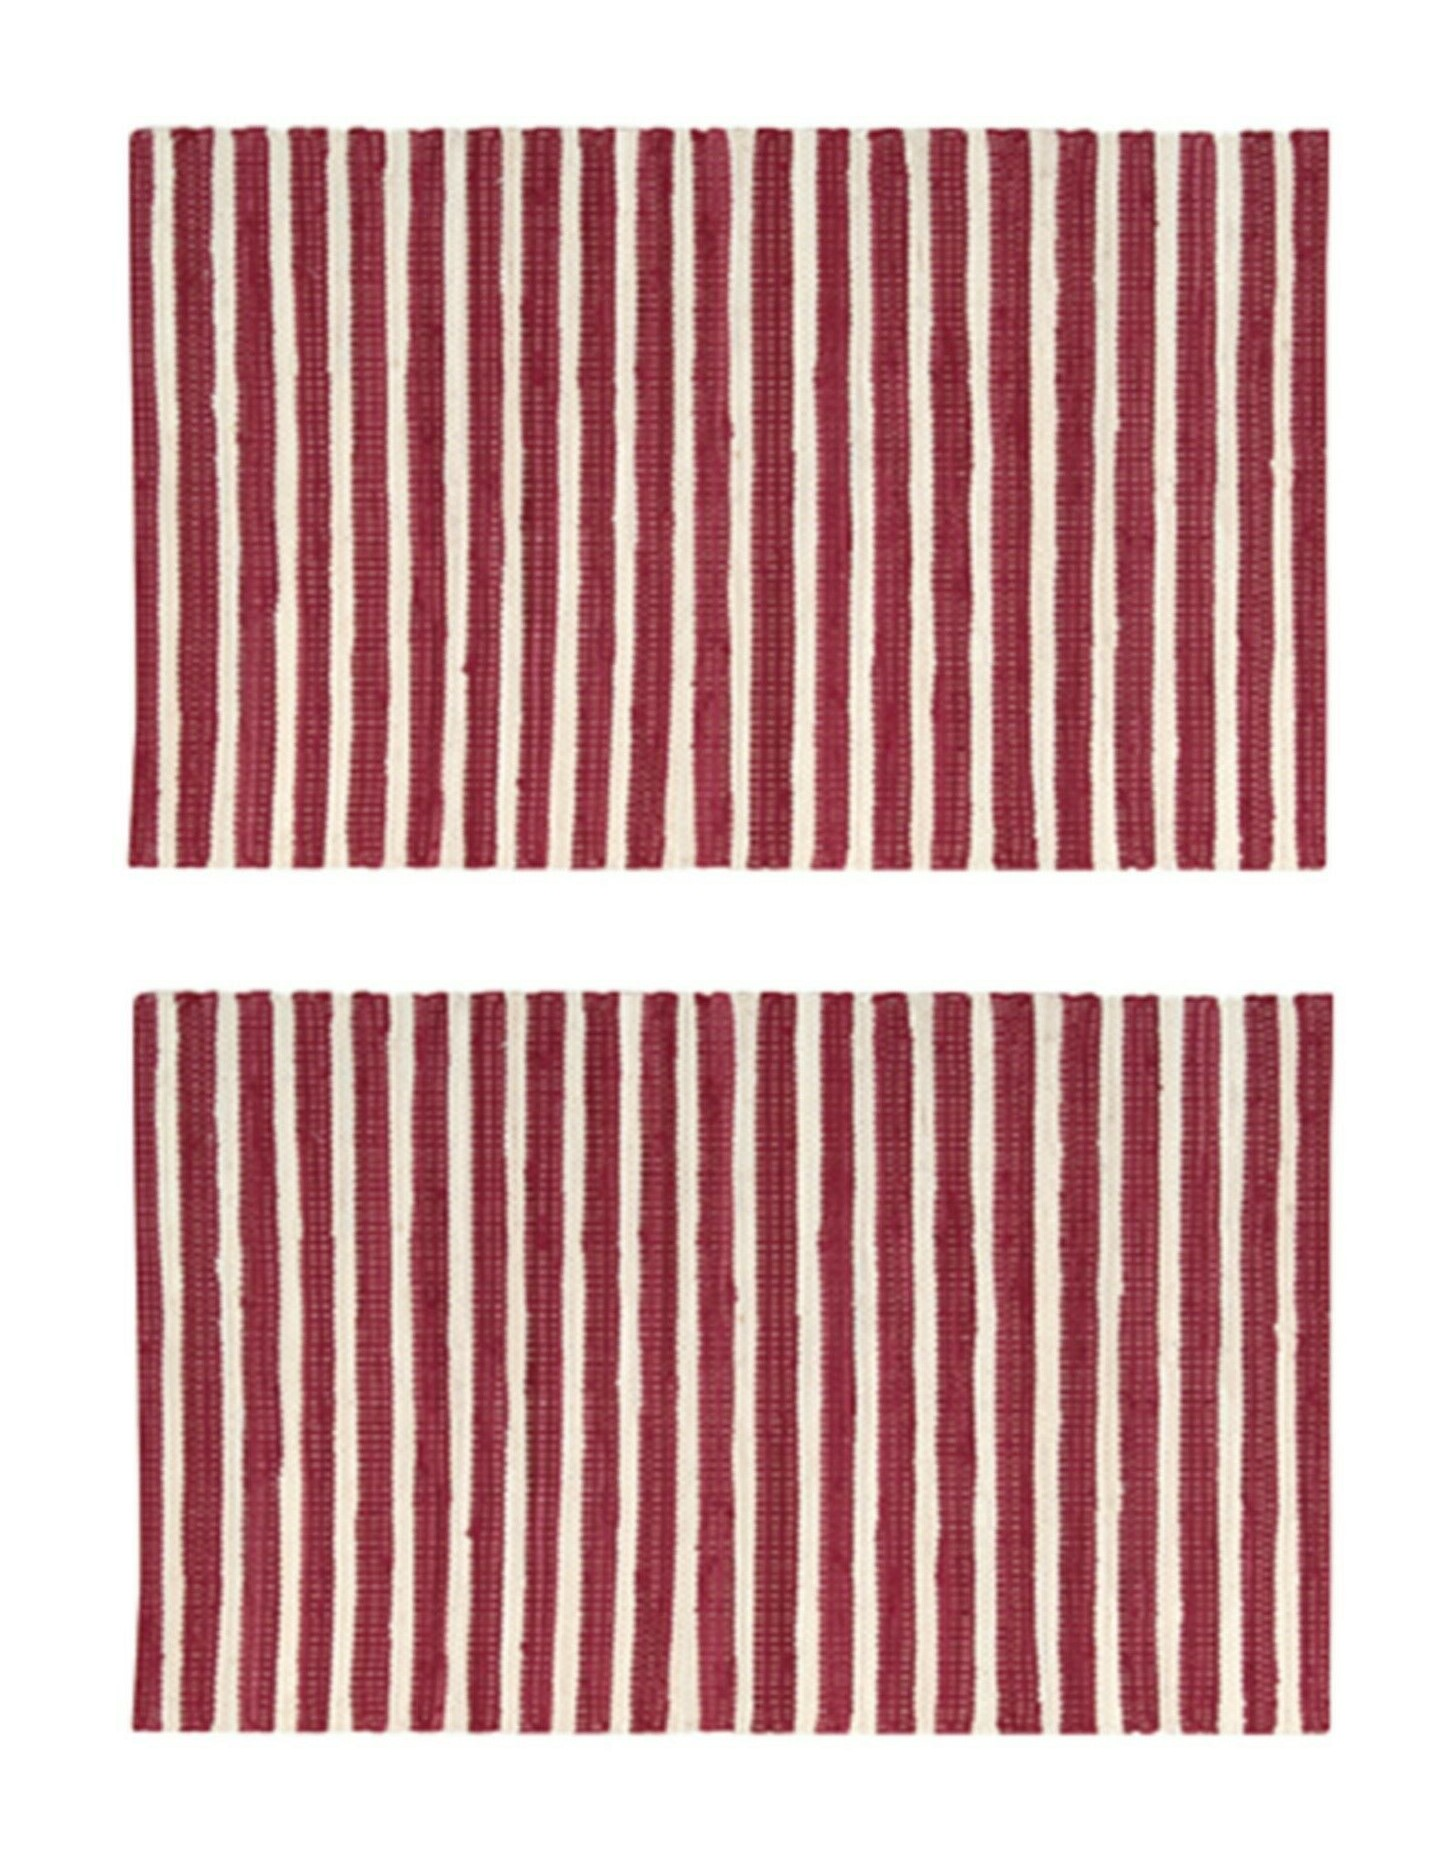 2-PACK-Nourison-Brunswick-Stripe-Accent-Floor-Area-Rugs-24-034-x-36-034-or-30-034-x-48-034 thumbnail 10